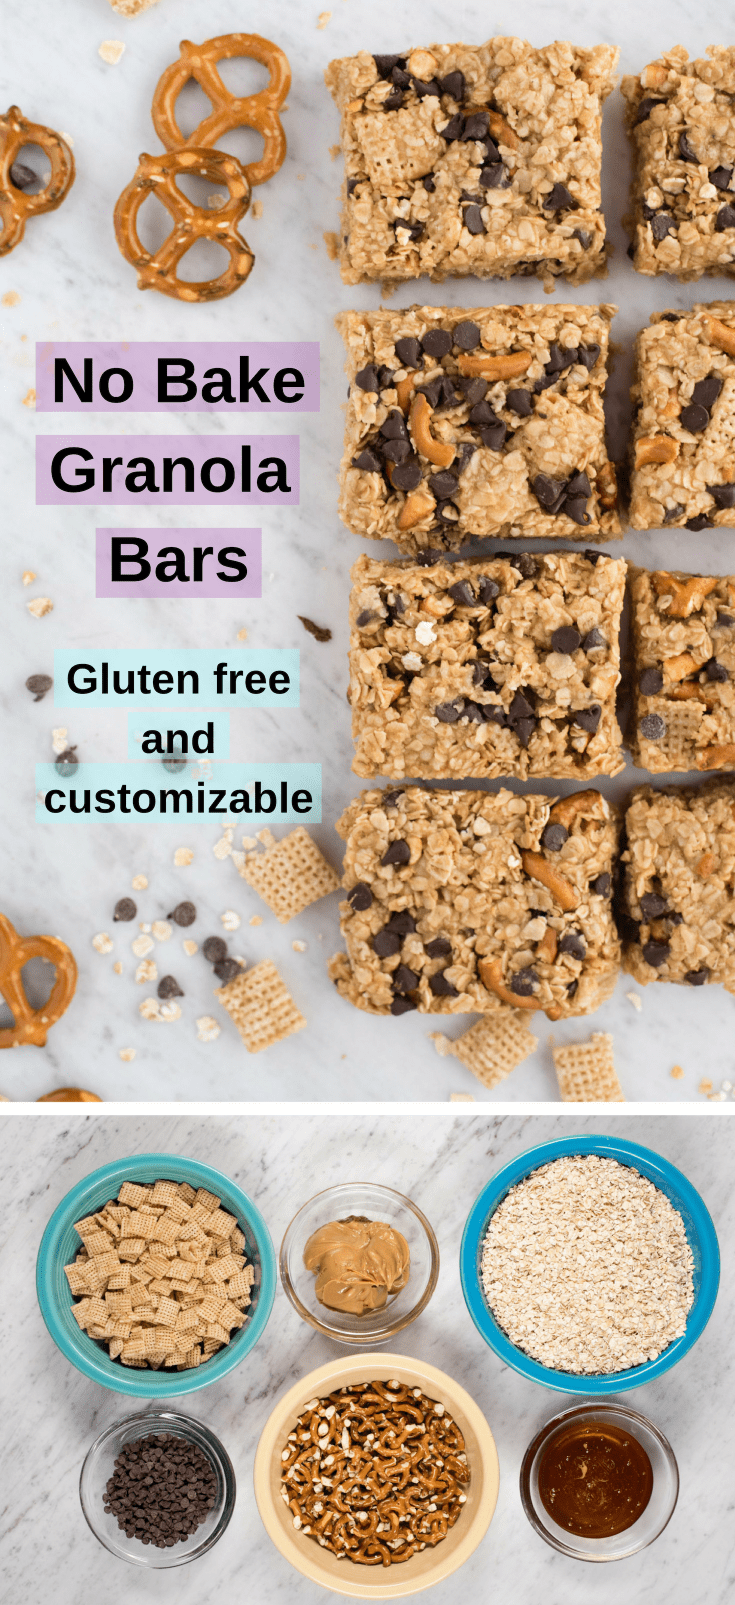 No bake granola bars with peanut butter and honey. Customize these homemade granola bars with gluten free, refined sugar free, and dairy free options!